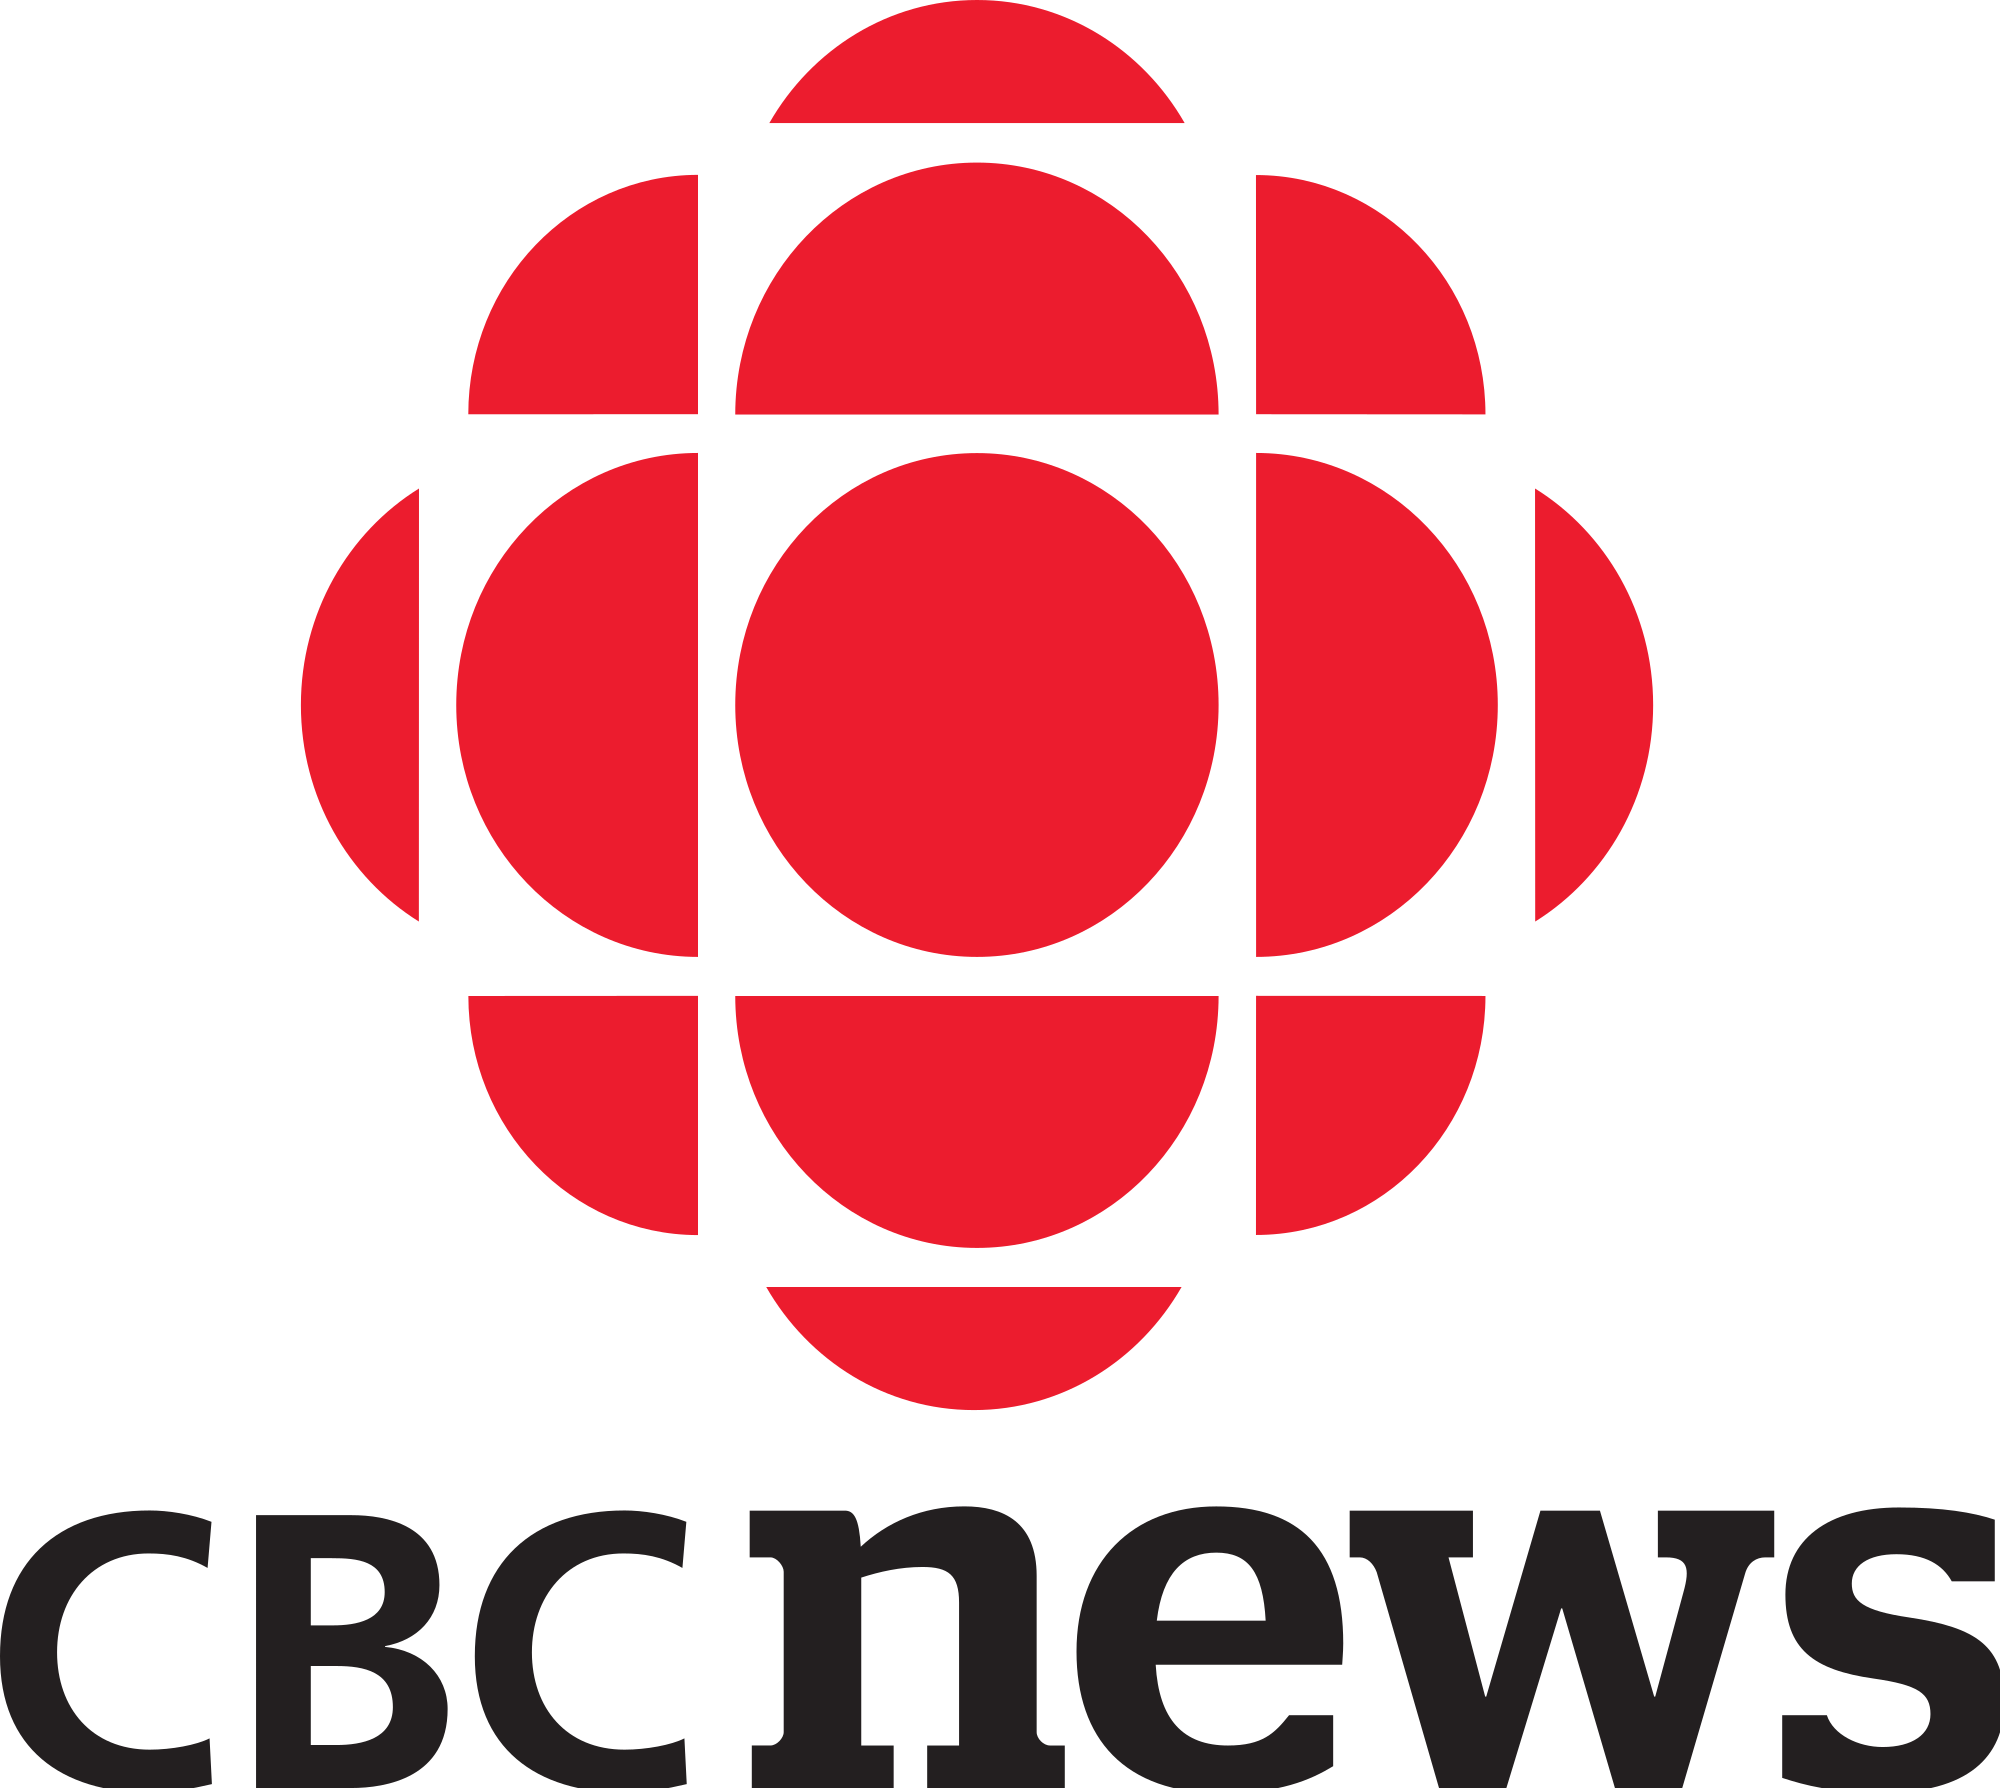 cbc3.png